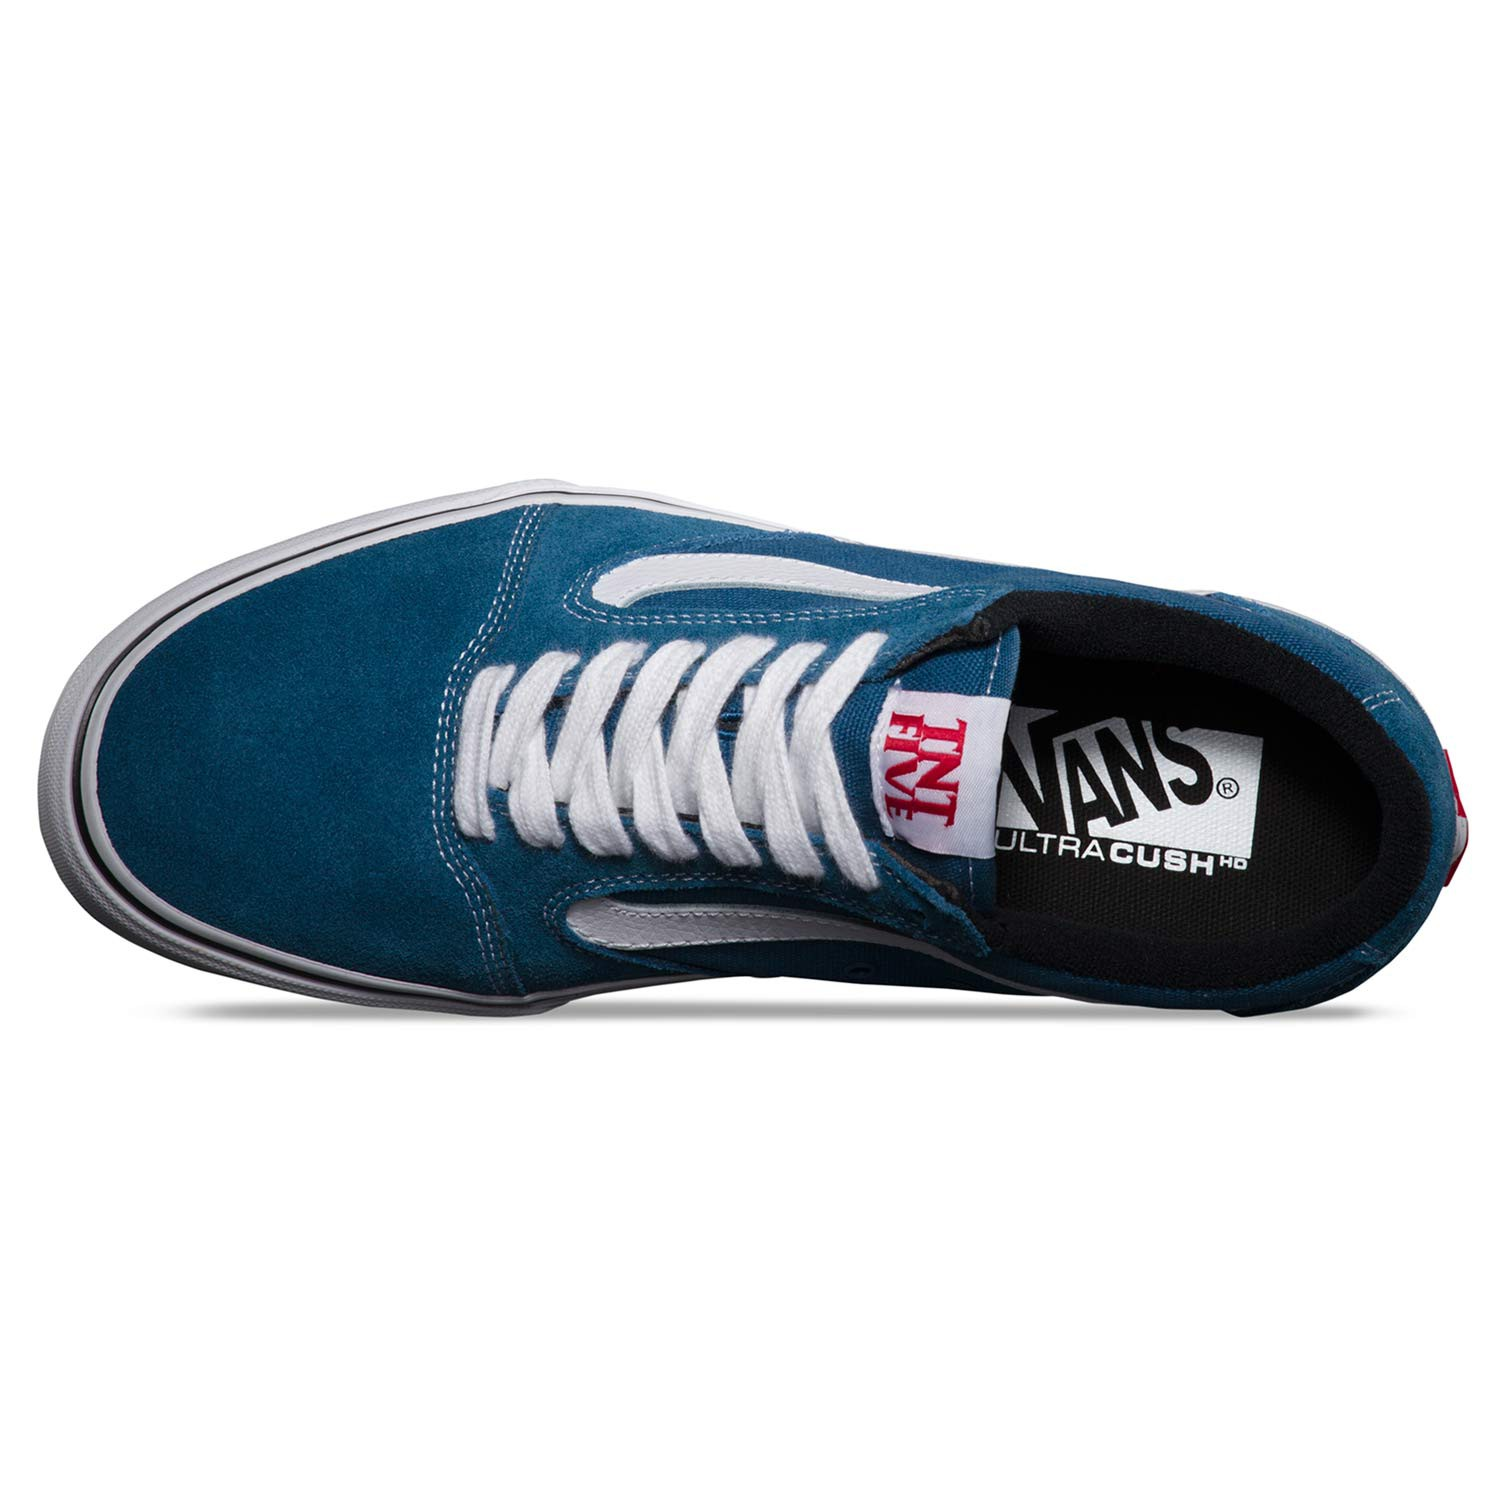 0a24a1434a453c Buy vans ultracush blue